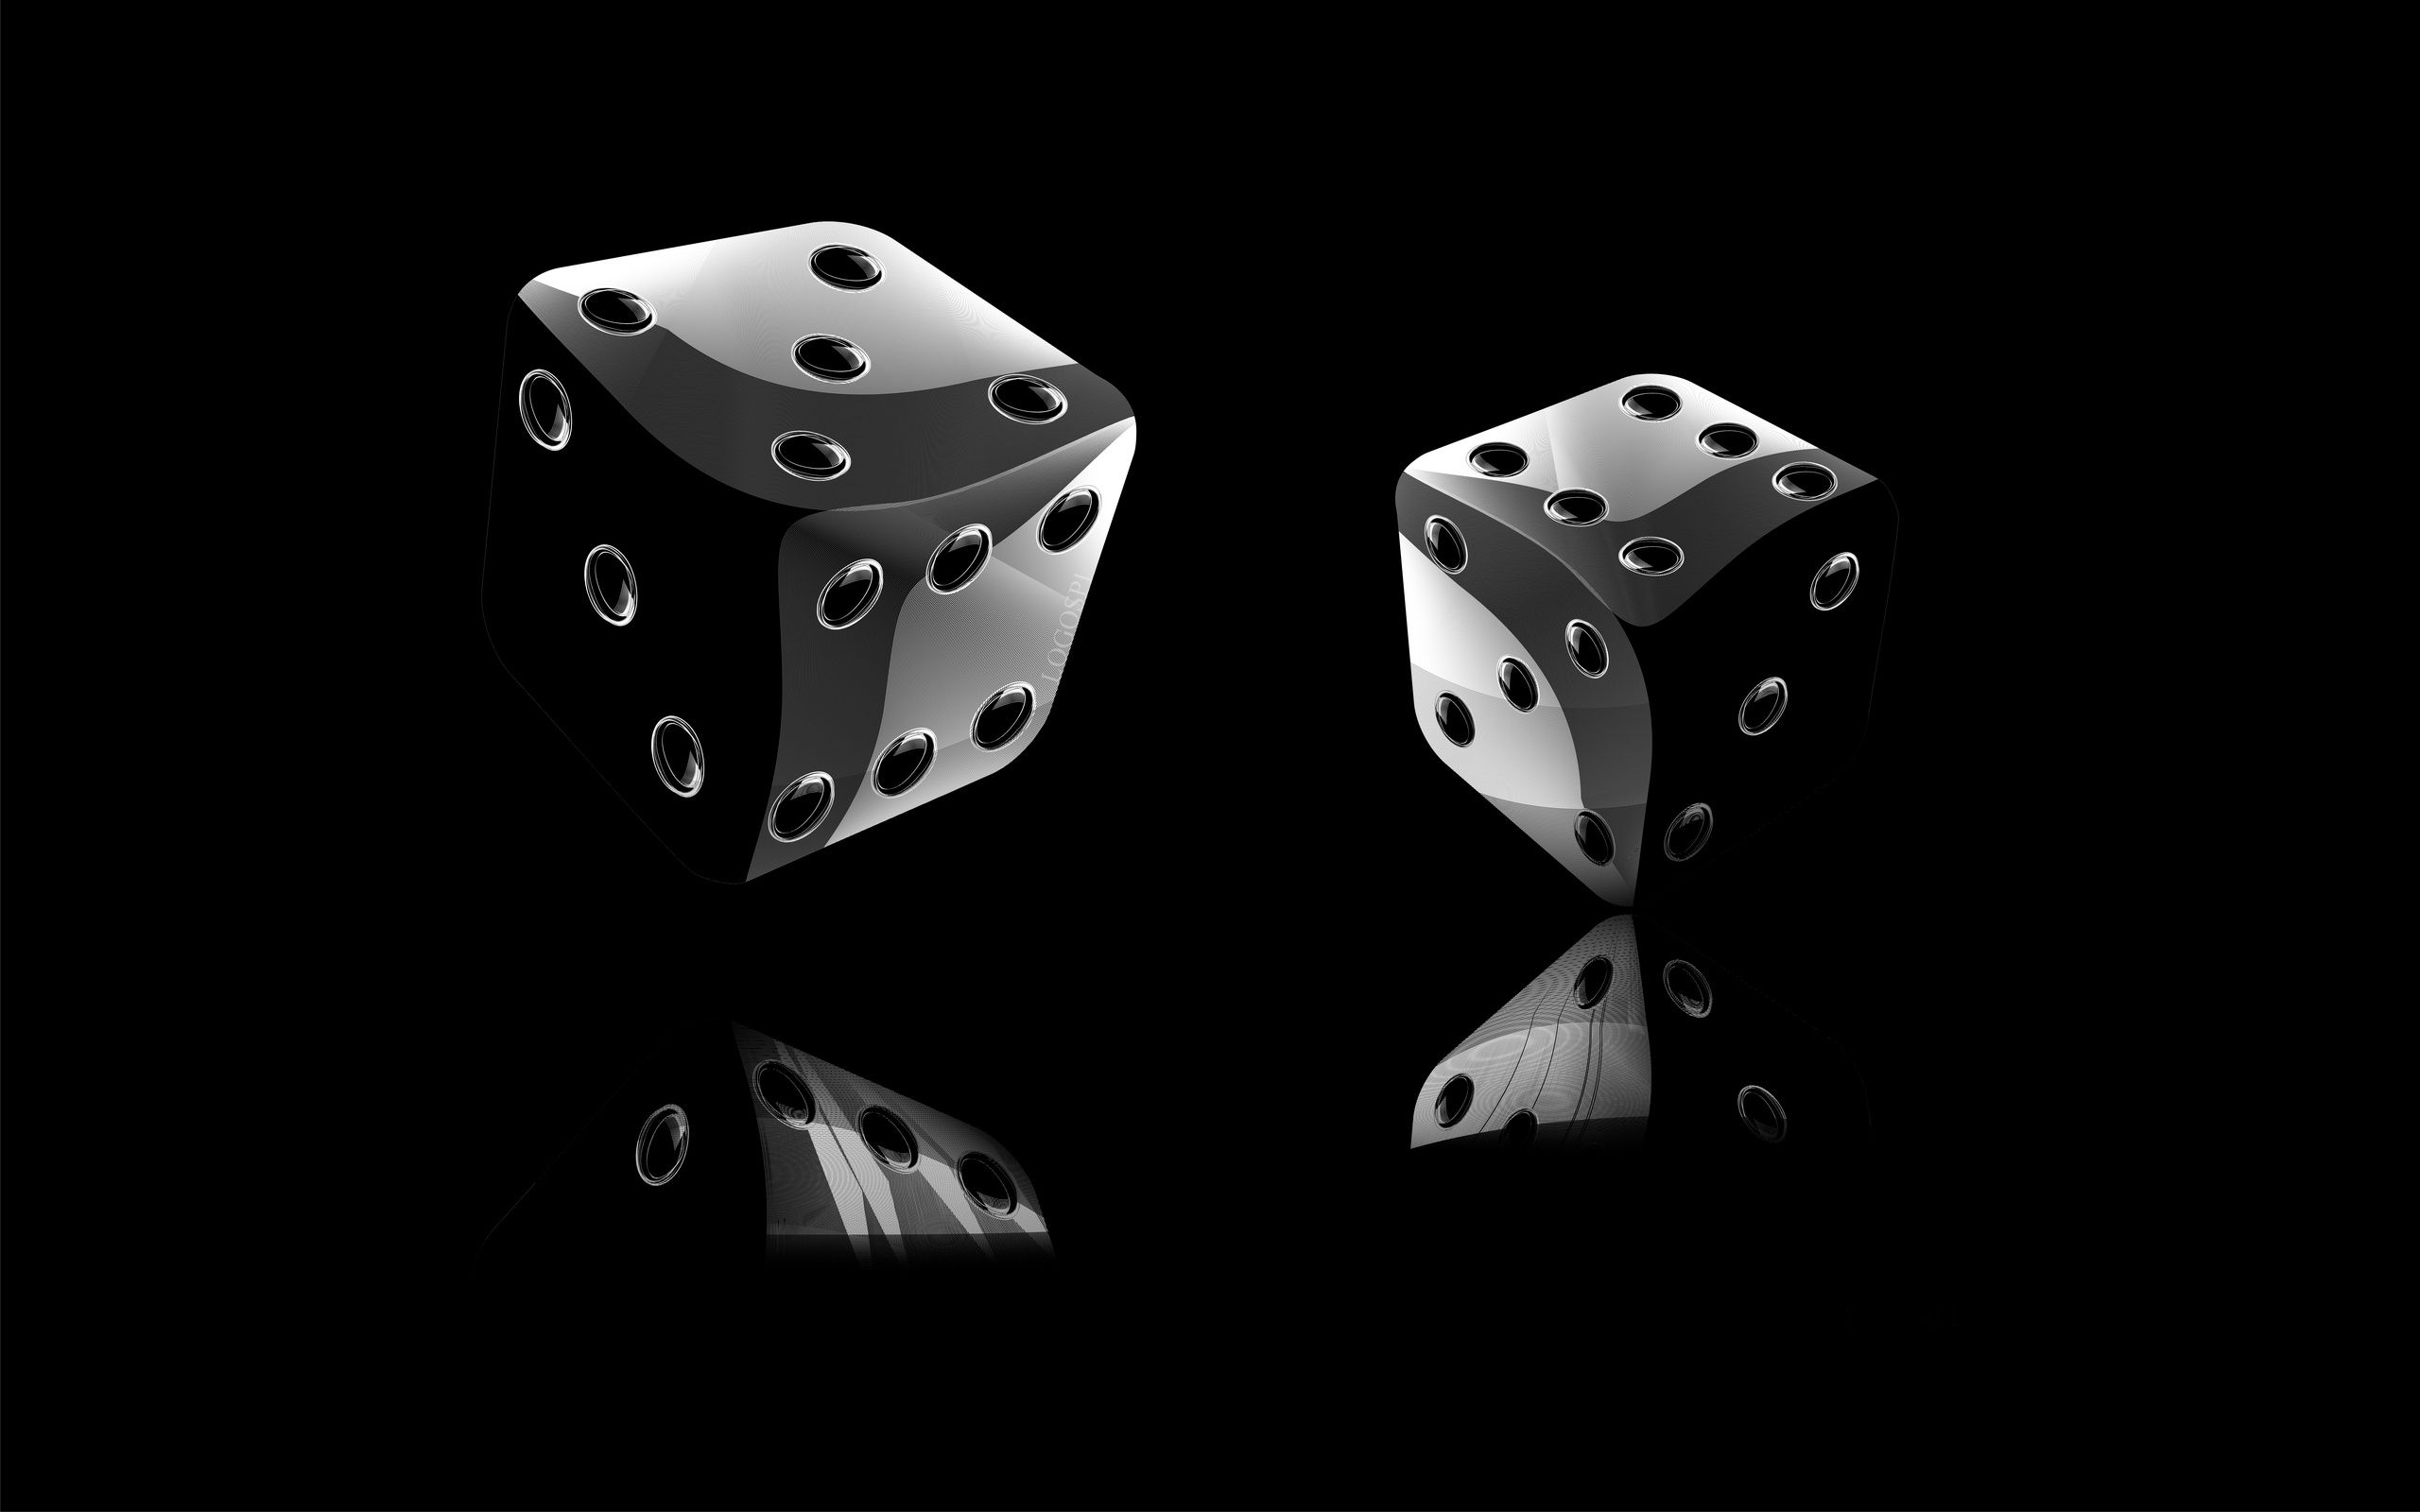 3d Dice Wallpapers Black Hd Wallpaper Android Wallpaper Abstract Black Wallpaper 3d black cool wallpaper